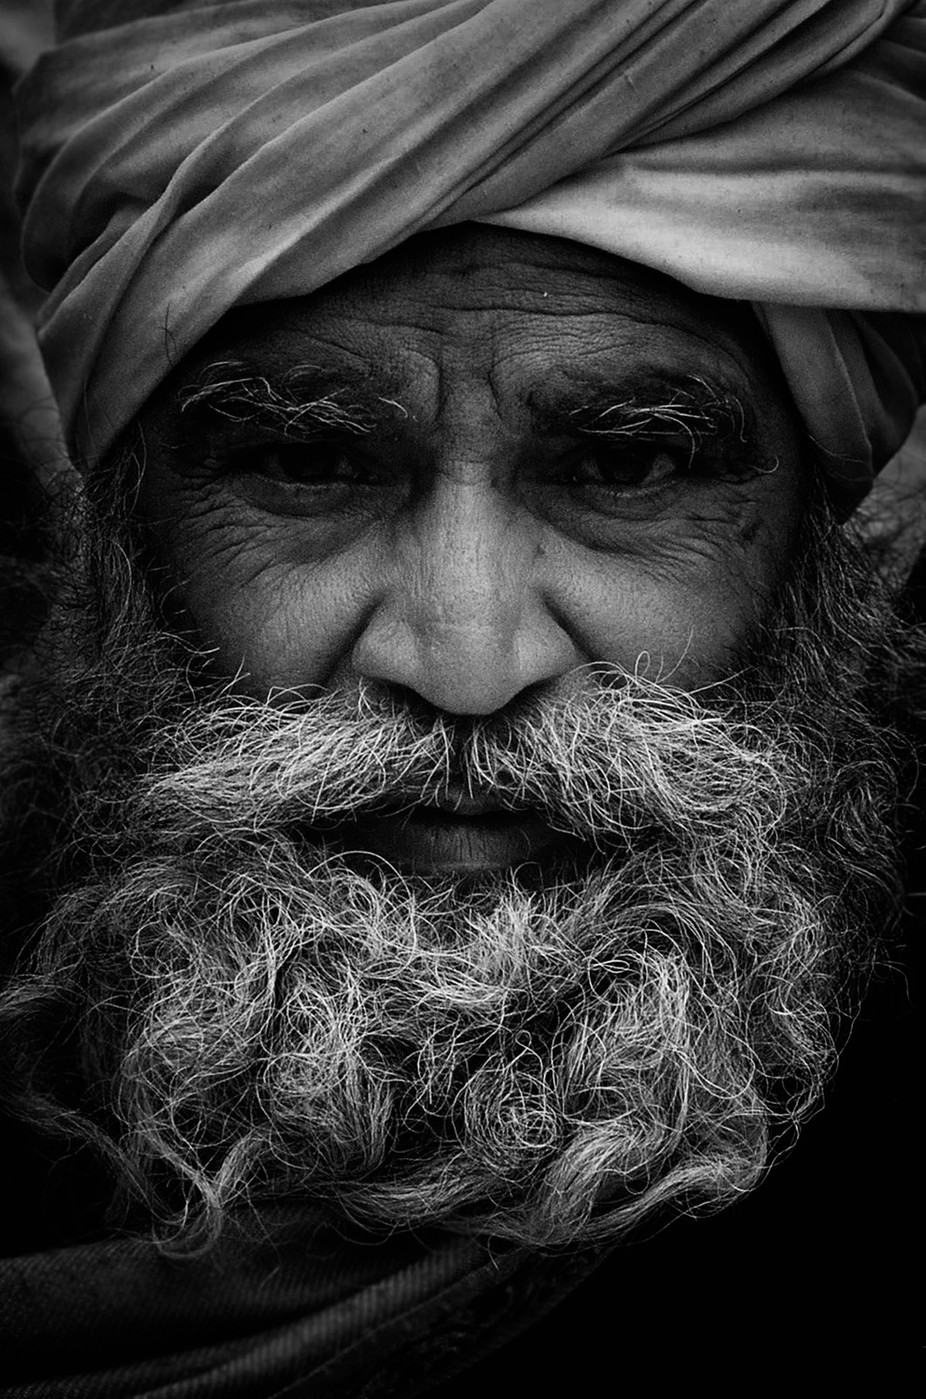 Sadhu  by vladimirchuyko - Cultures of the World Photo Contest